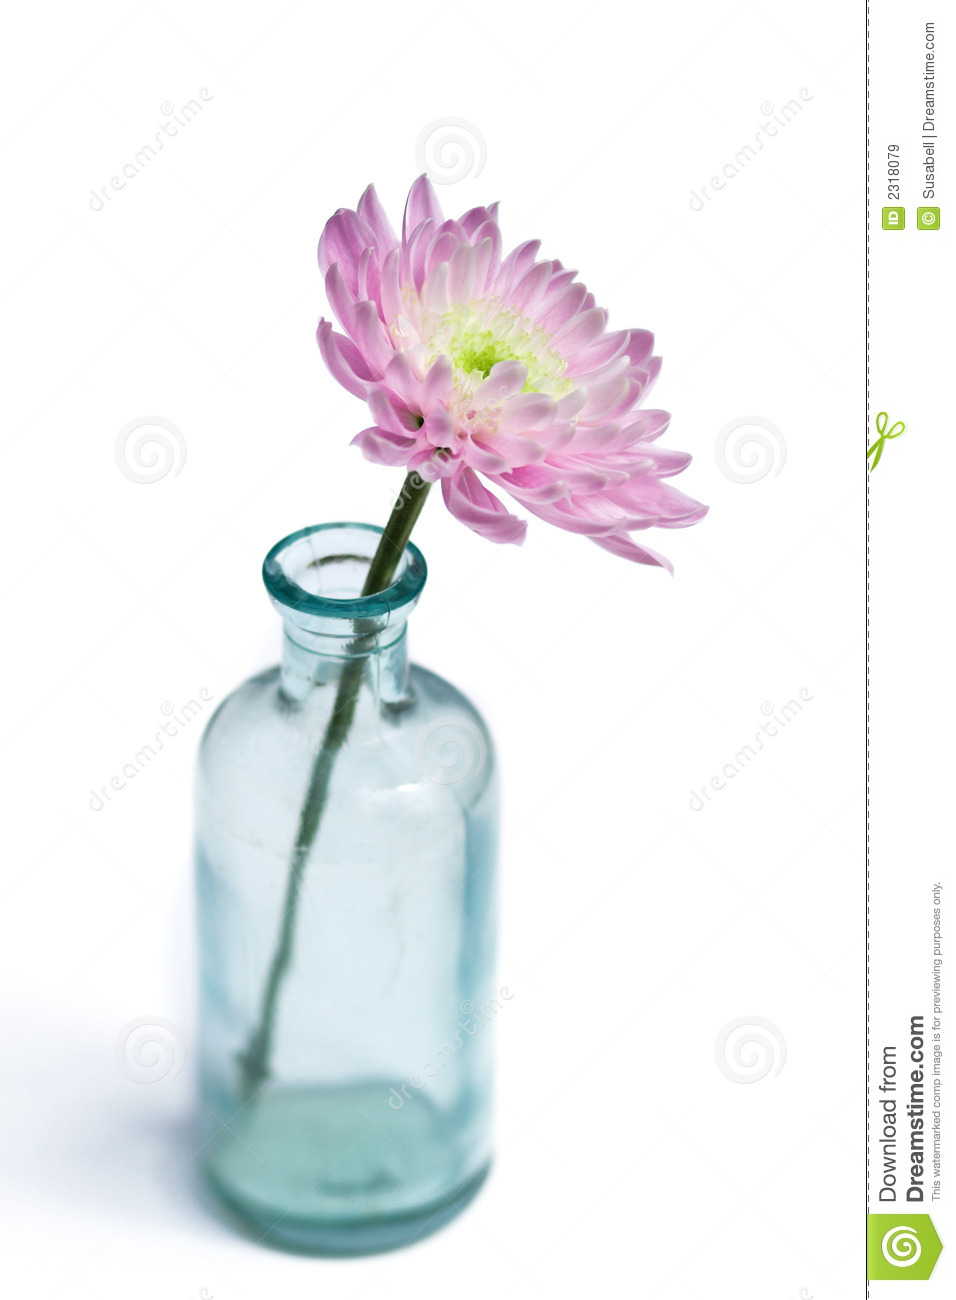 Flower in glass vase stock image image of life fresh 2318079 flower in glass vase reviewsmspy